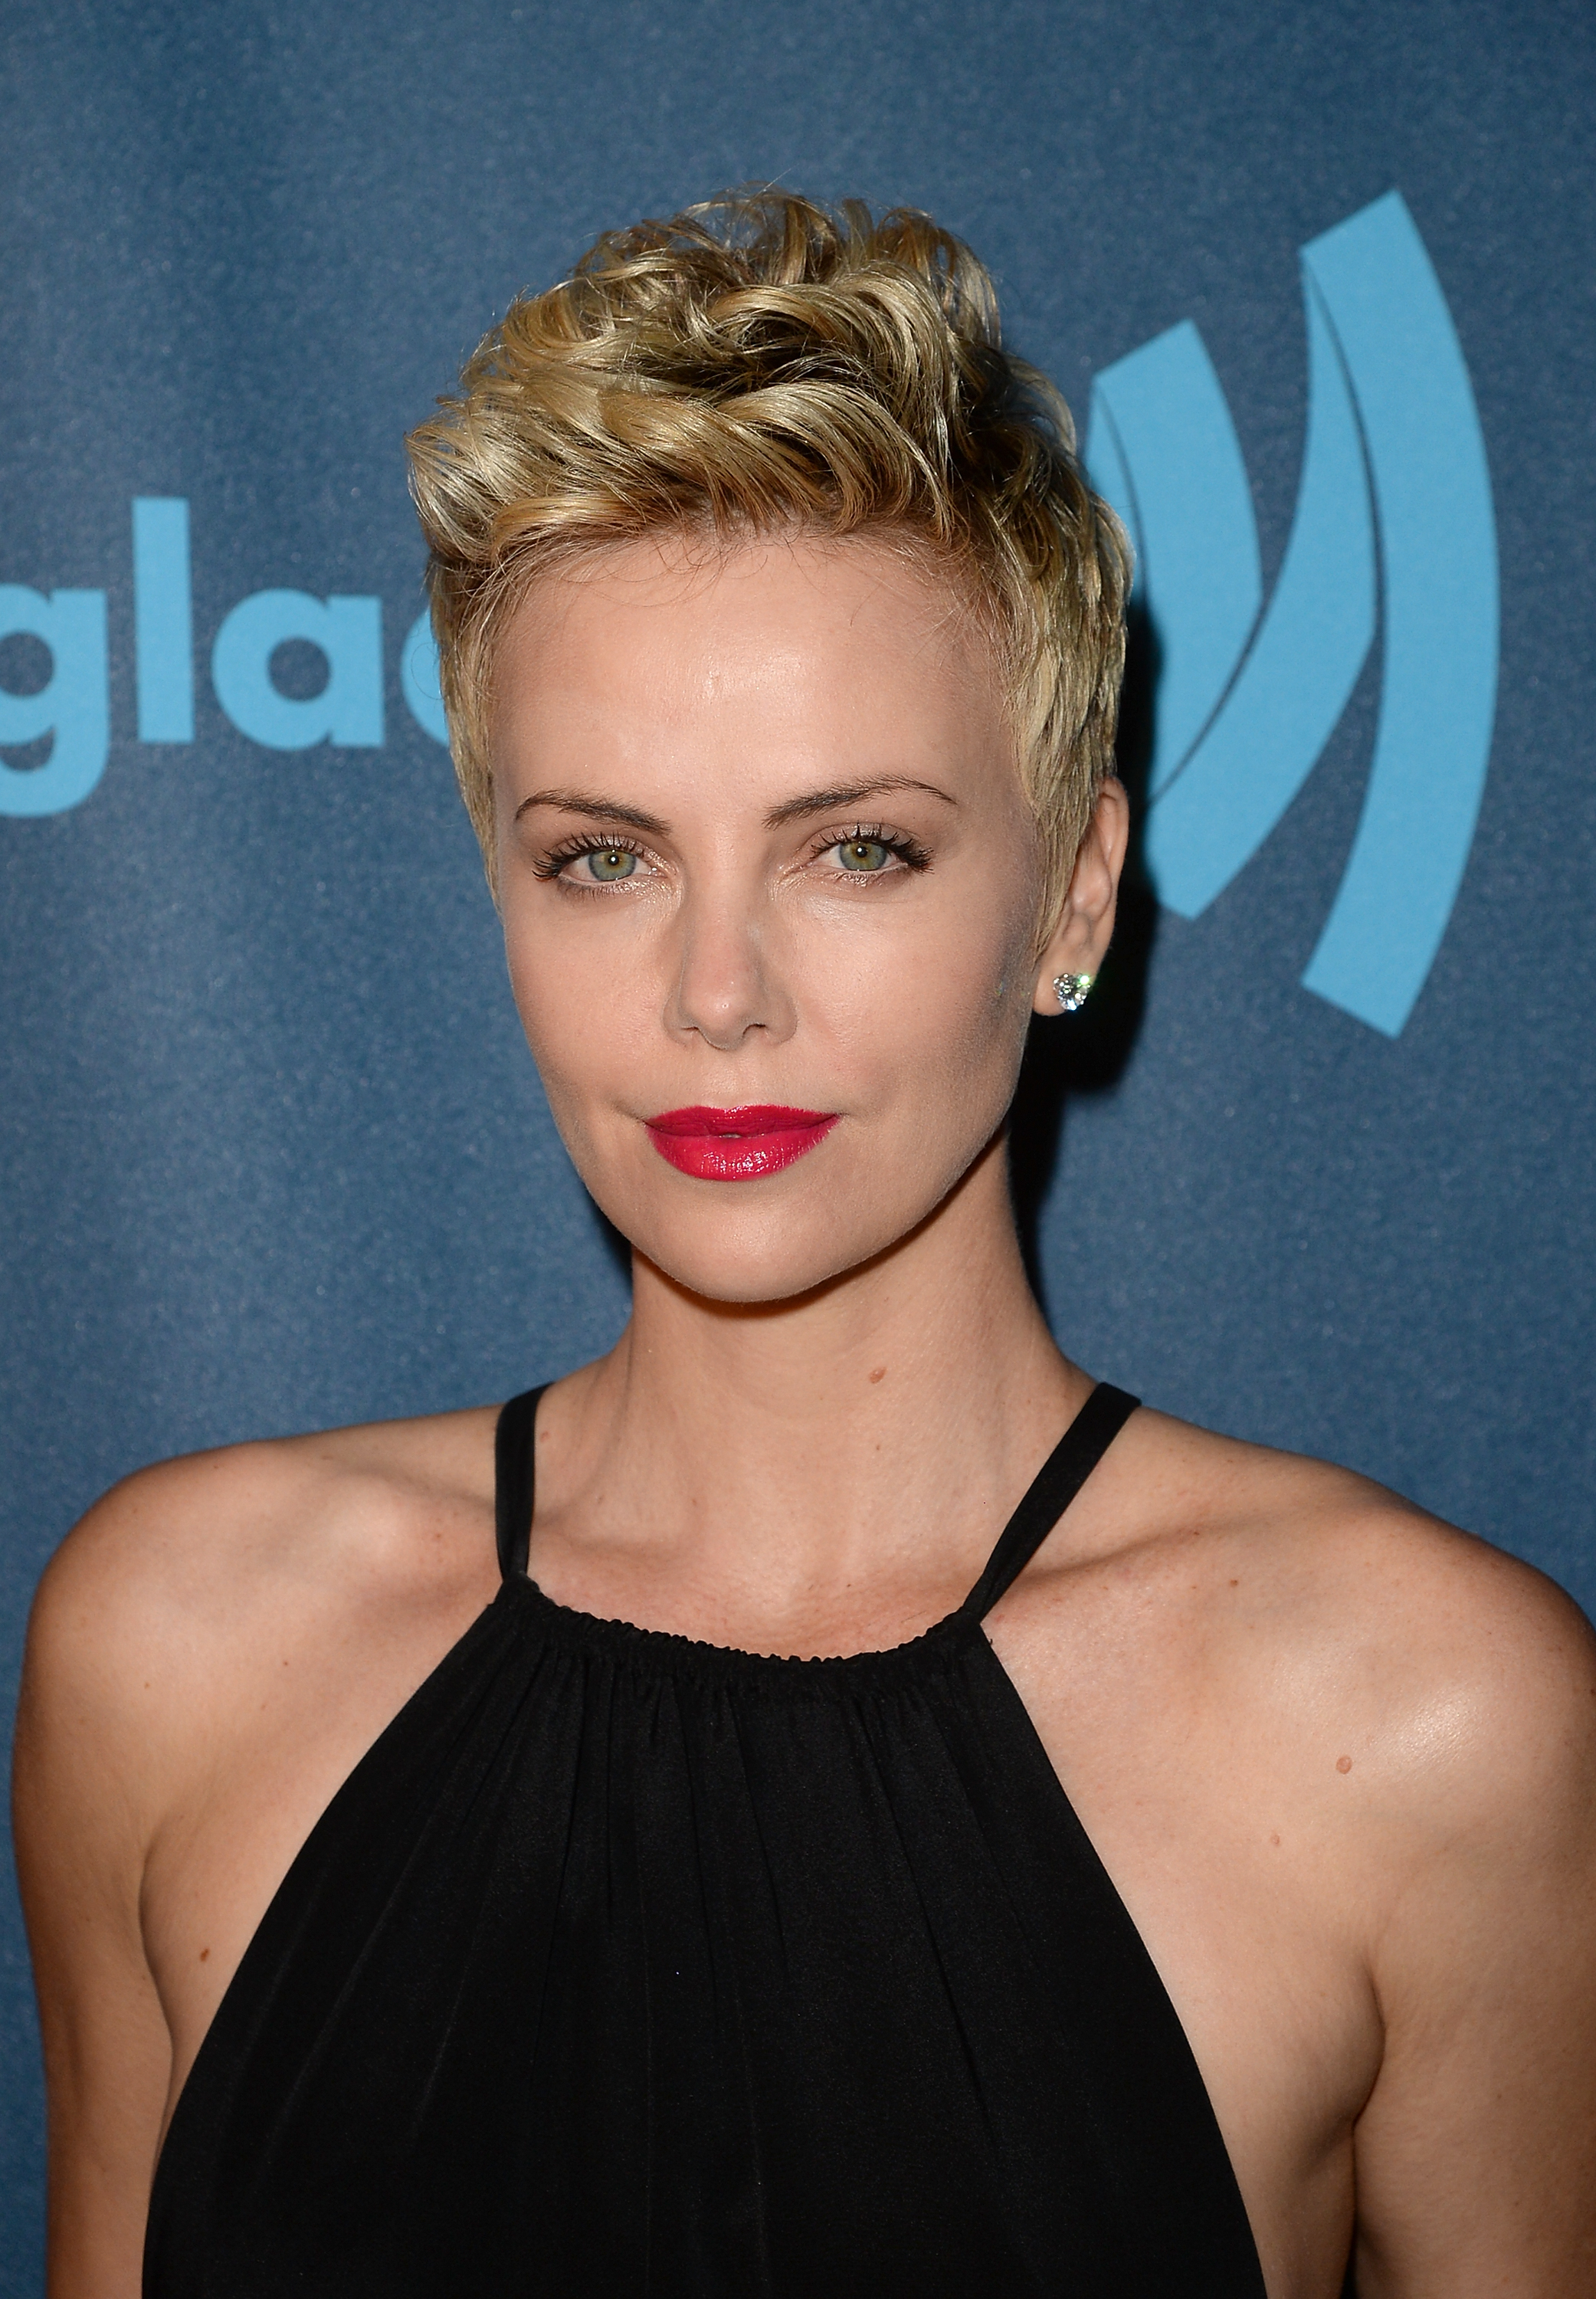 LOS ANGELES, CA - APRIL 20: Actress Charlize Theron attends the 24th Annual GLAAD Media Awards presented by Ketel One and Wells Fargo at JW Marriott Los Angeles at L.A. LIVE on April 20, 2013 in Los Angeles, California. (Photo by Jason Merritt/Getty Images for GLAAD)